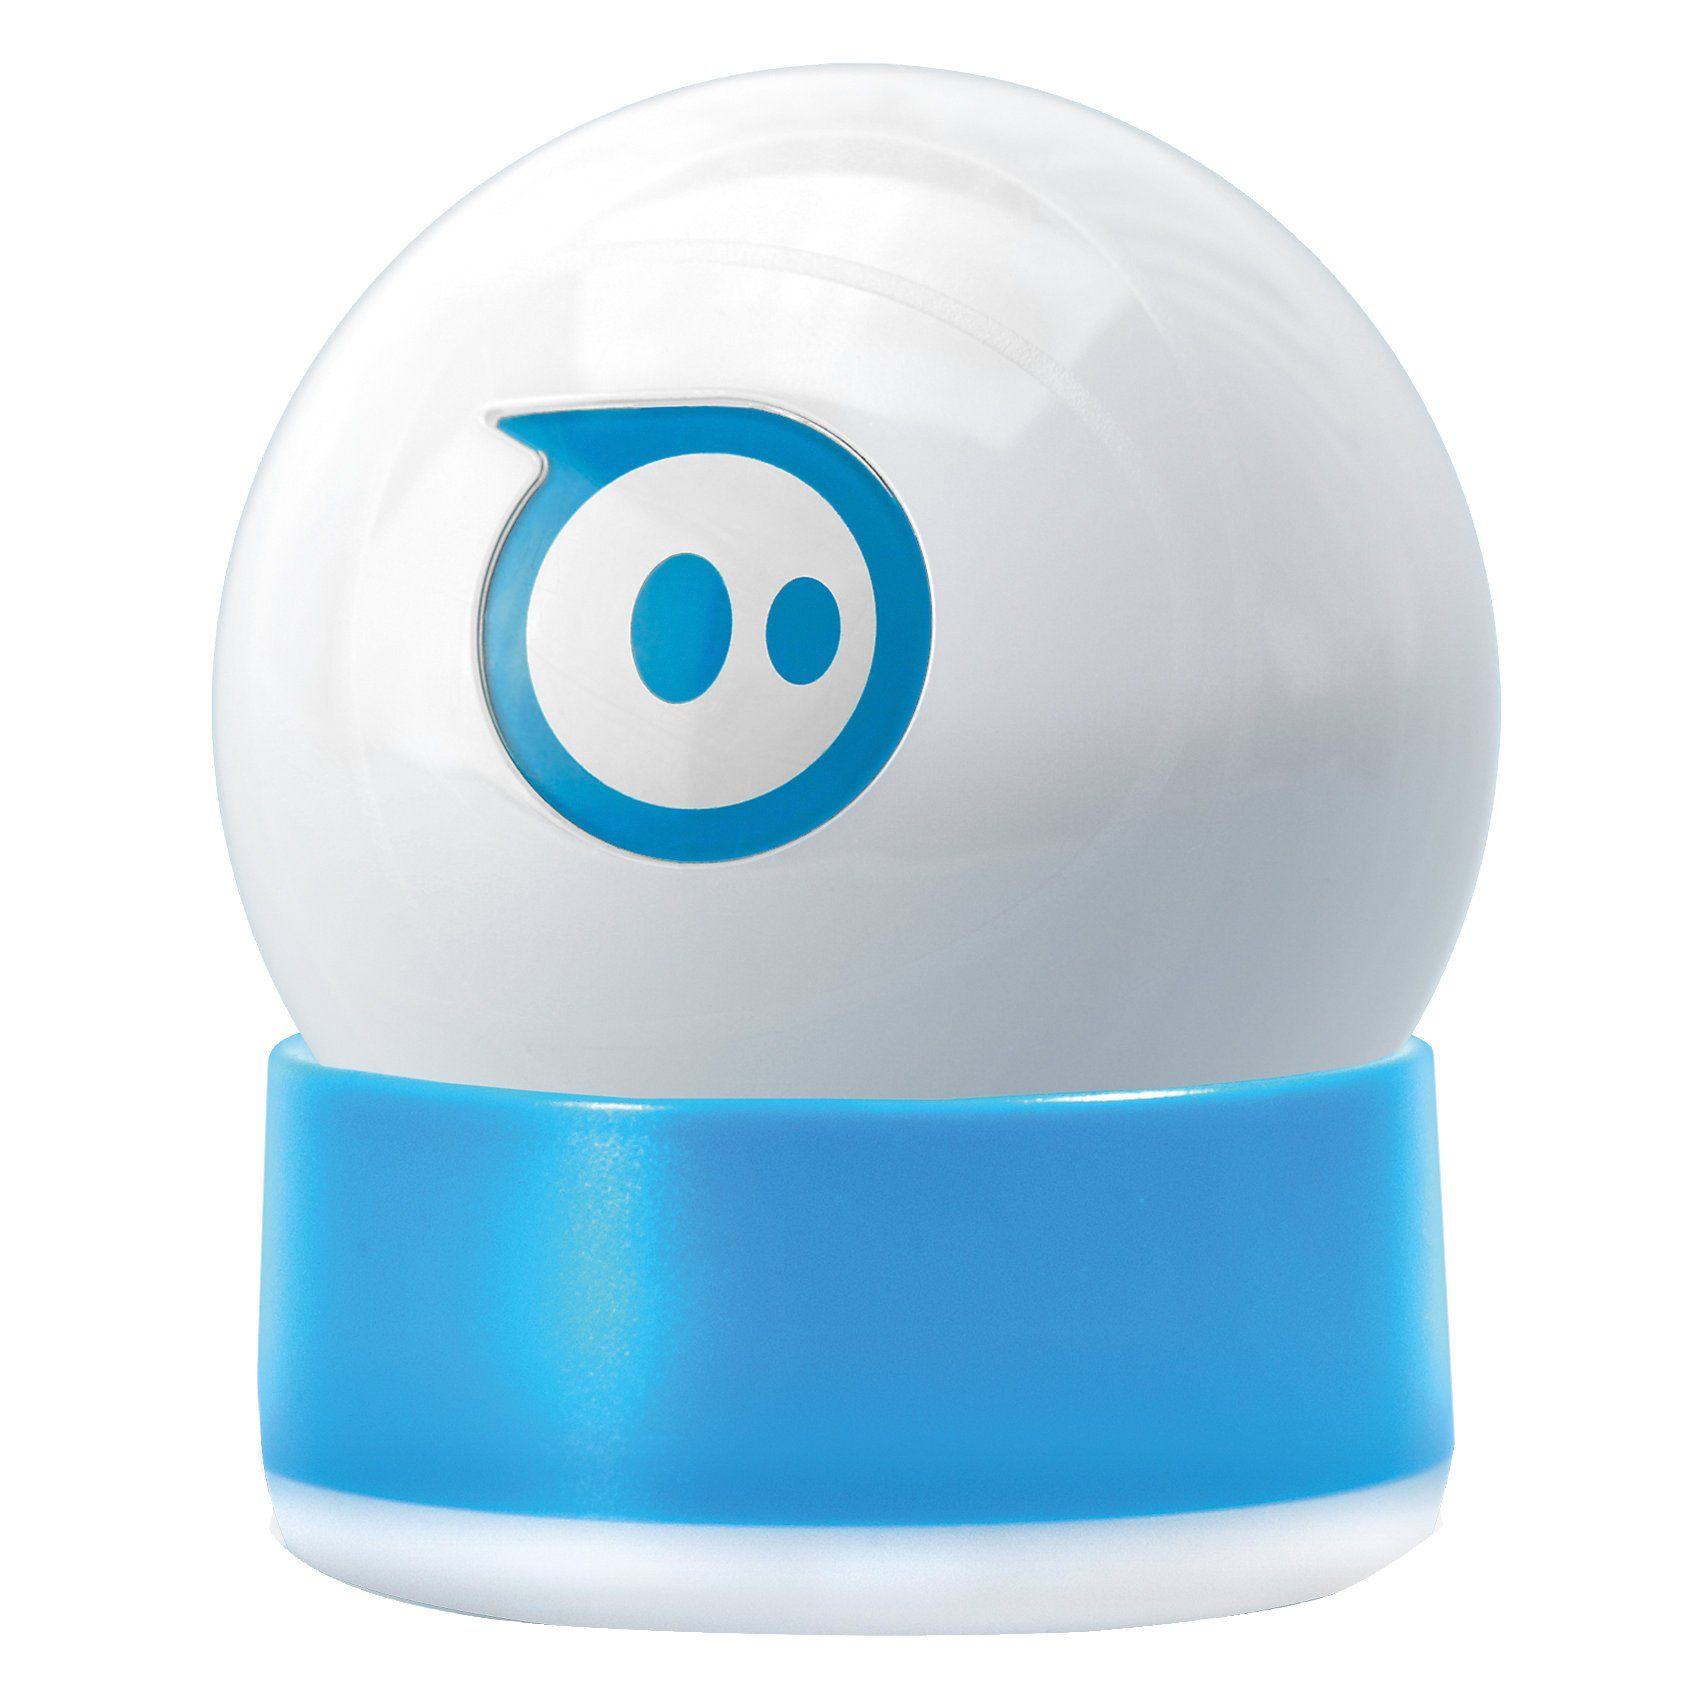 Elliot Sphero 2.0 - The Ball